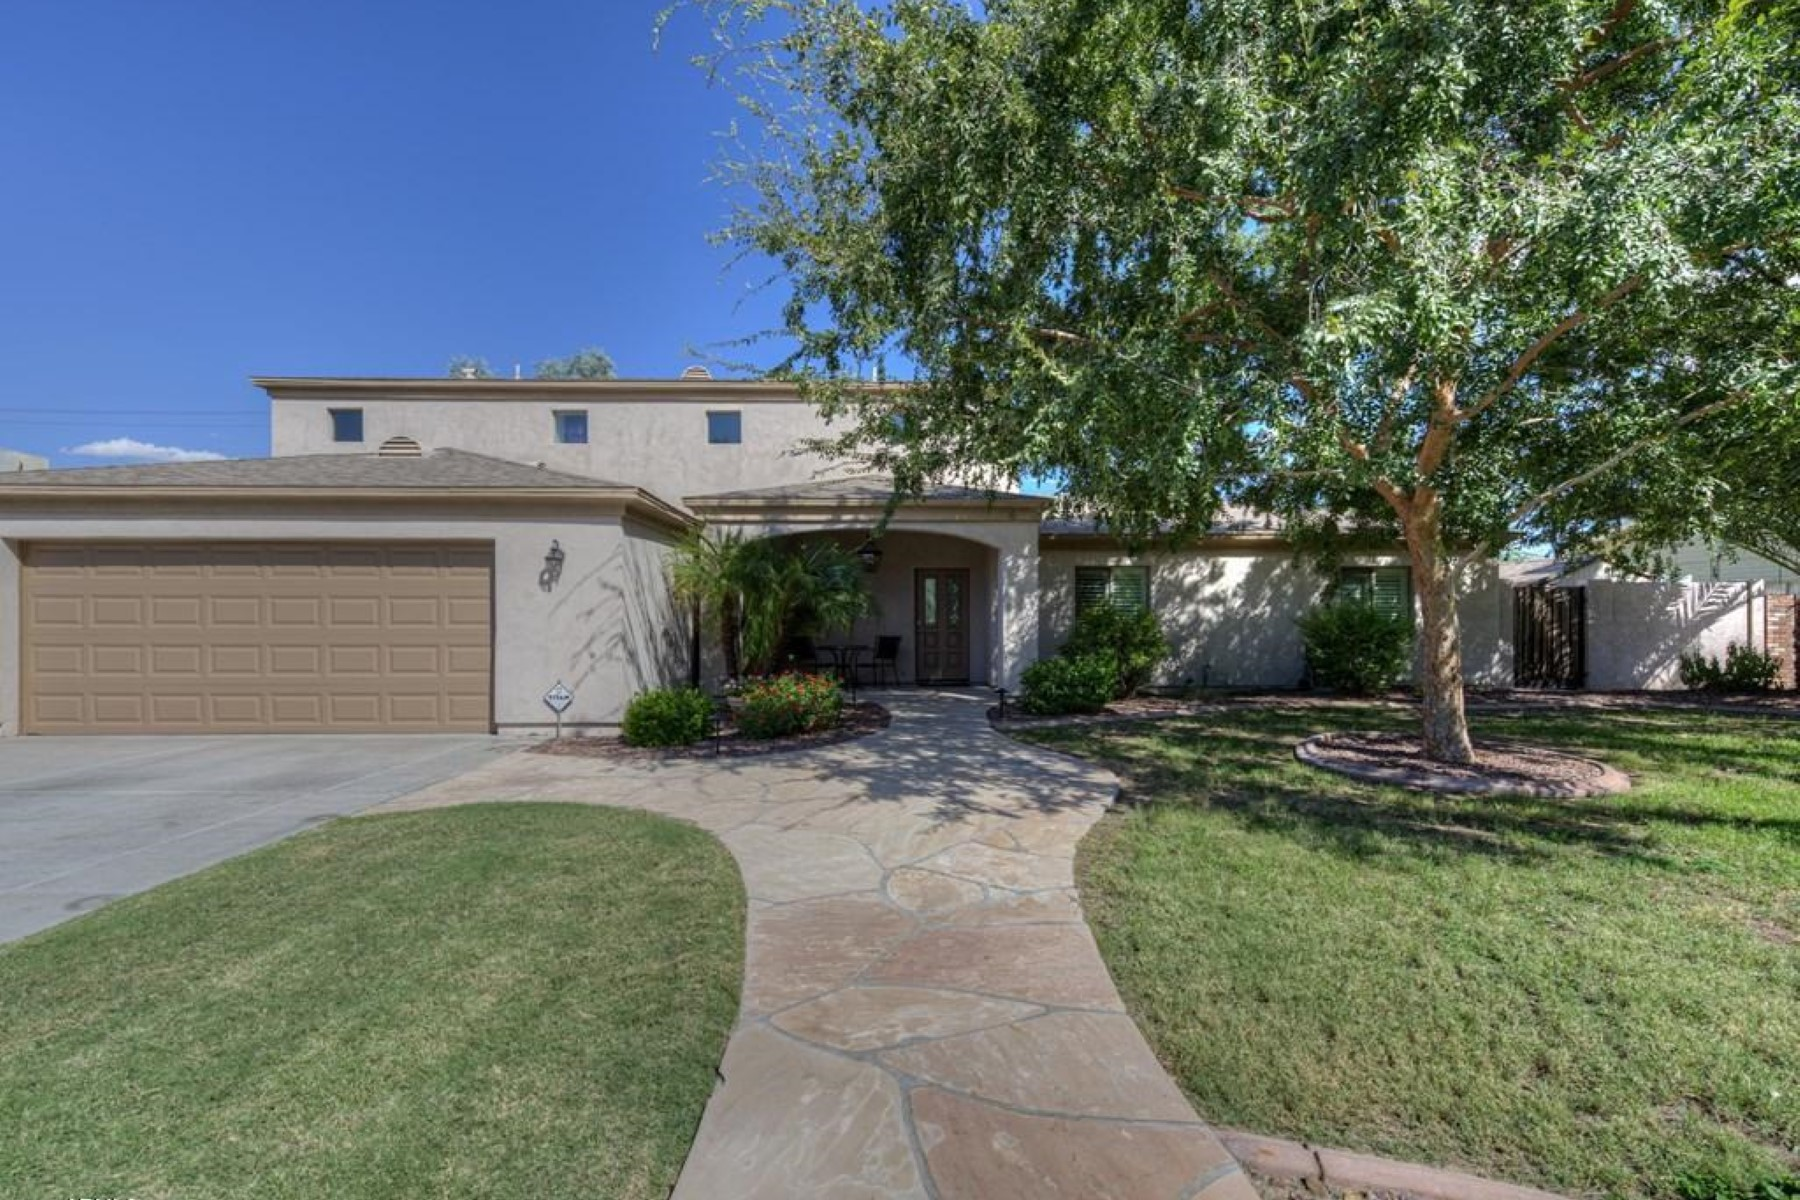 Maison unifamiliale pour l Vente à Perfect family home located in one of the most desirable neighborhood in Arcadia 3431 N 51st St Phoenix, Arizona, 85018 États-Unis